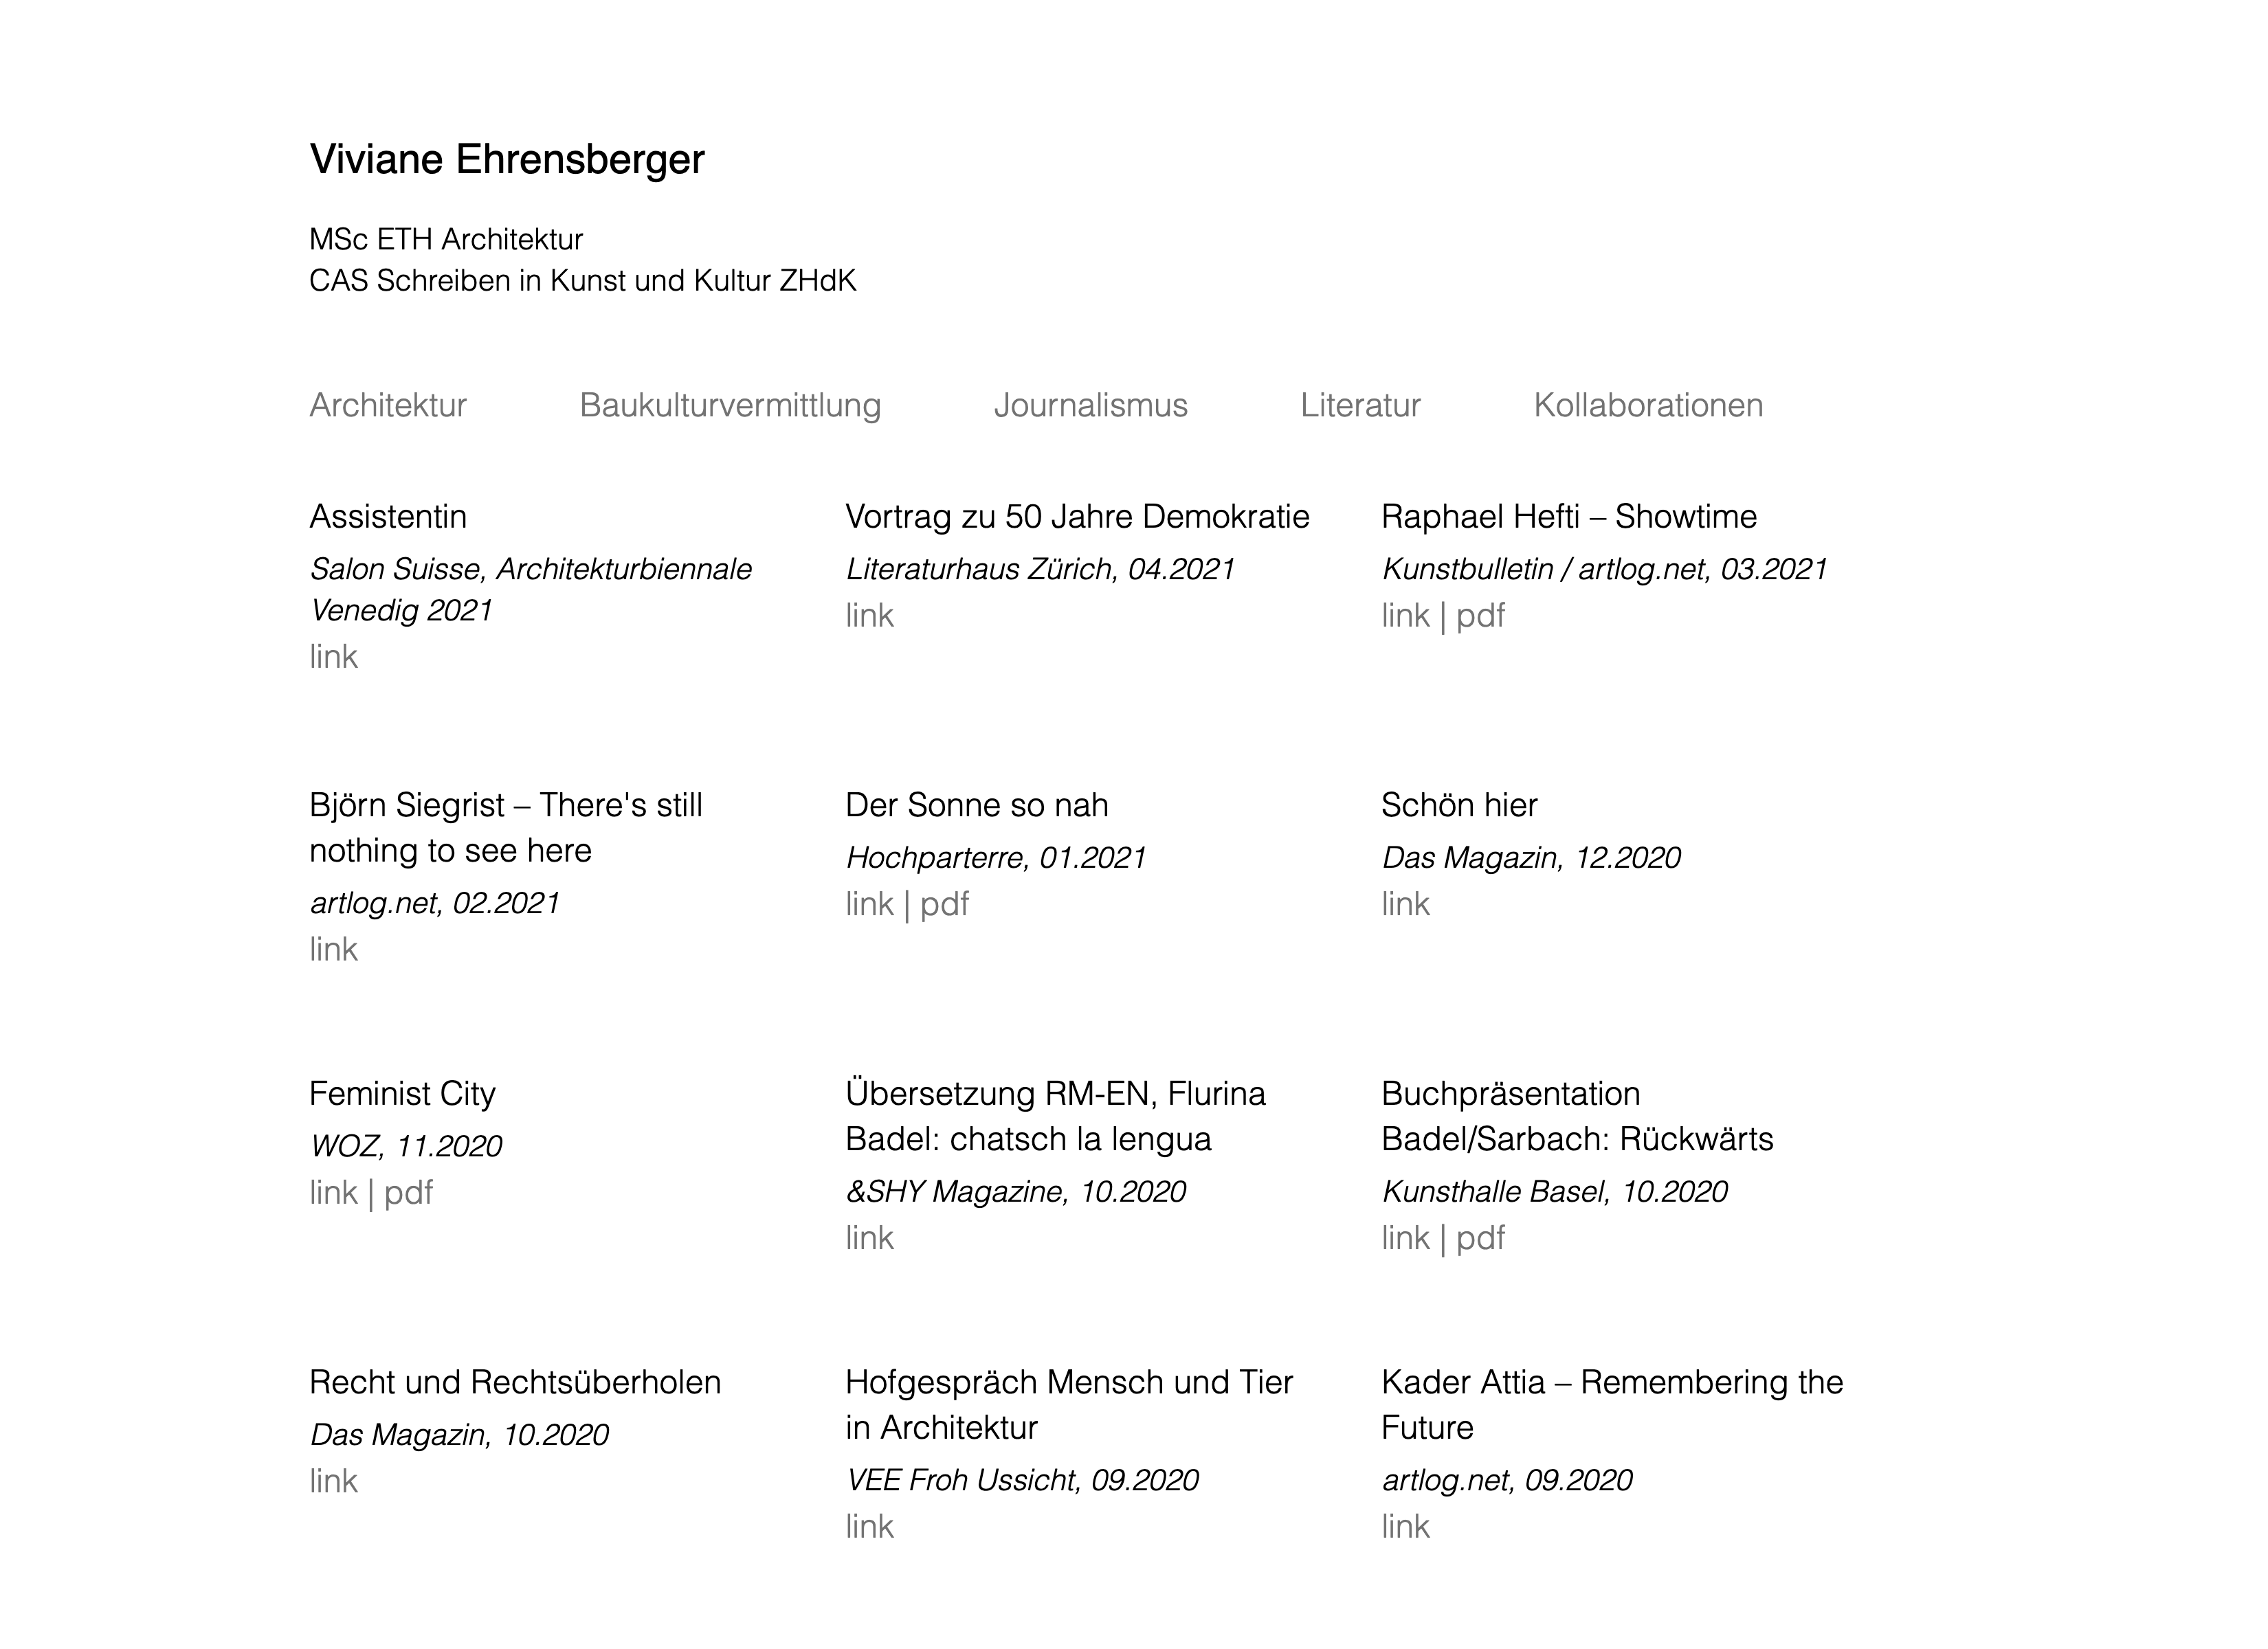 Screenshot of Viviane Ehrensberger's website